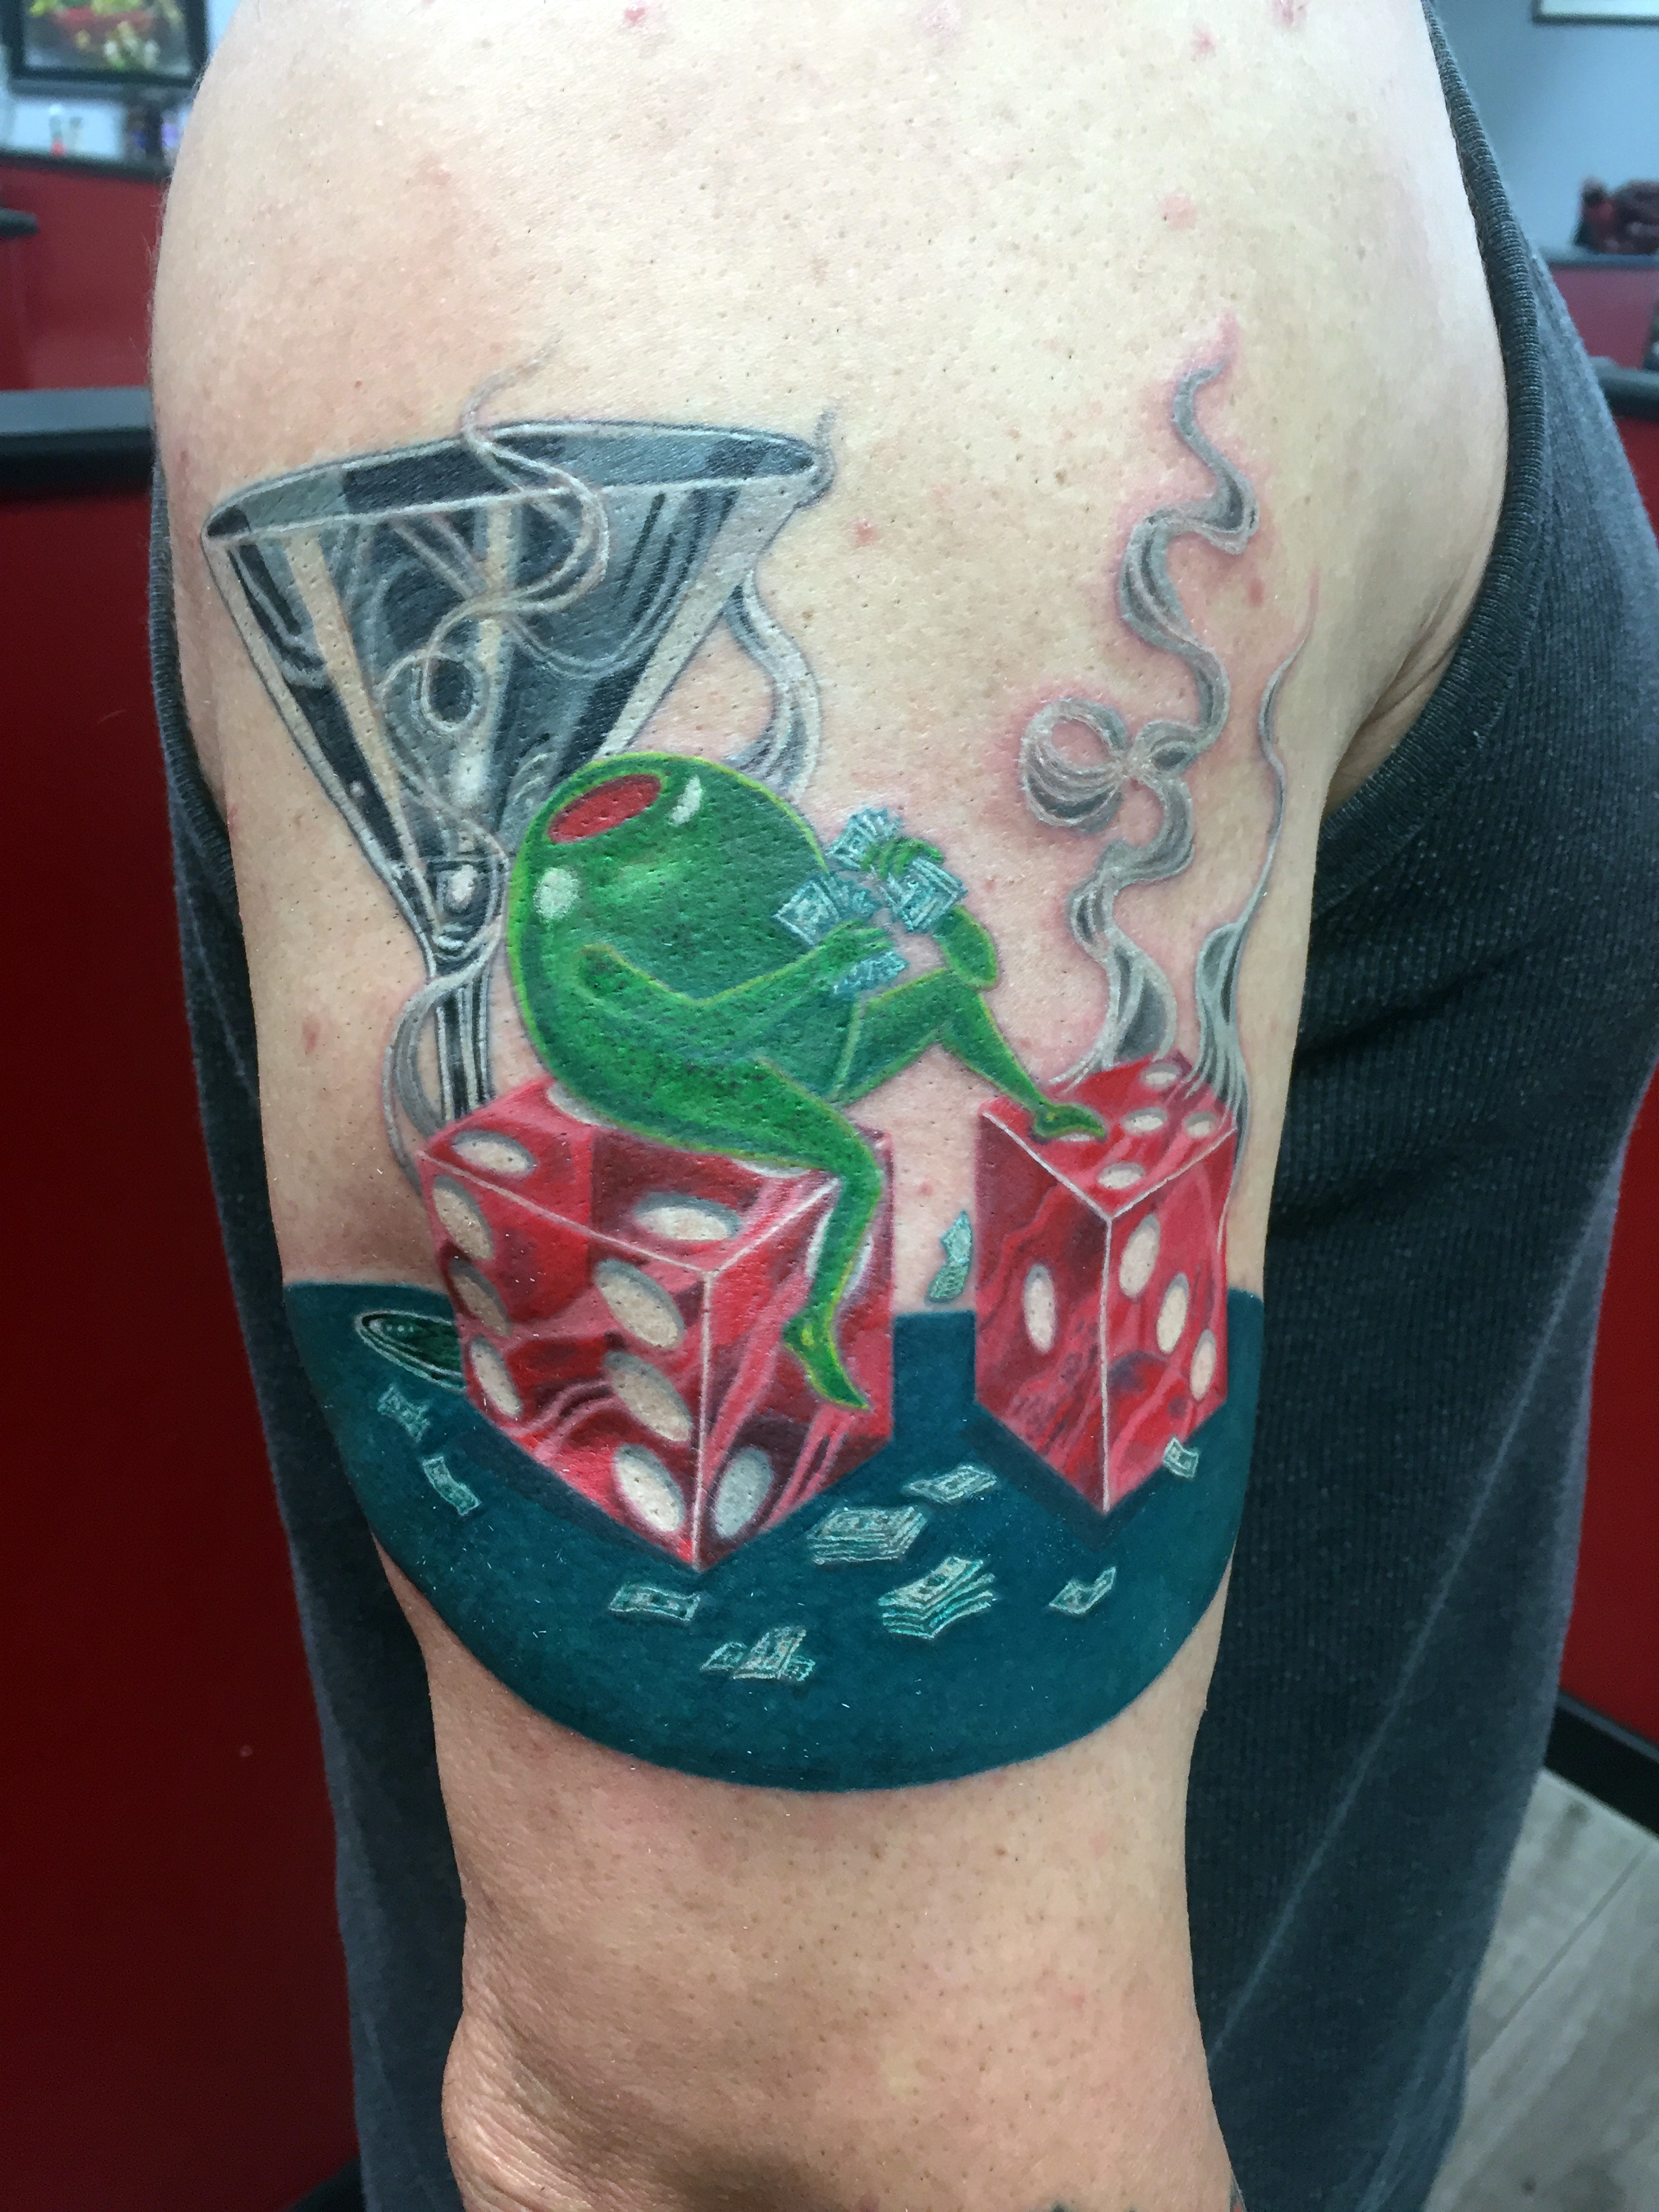 Q Tattoo in Huntington Beach - Karel Beck - Martini